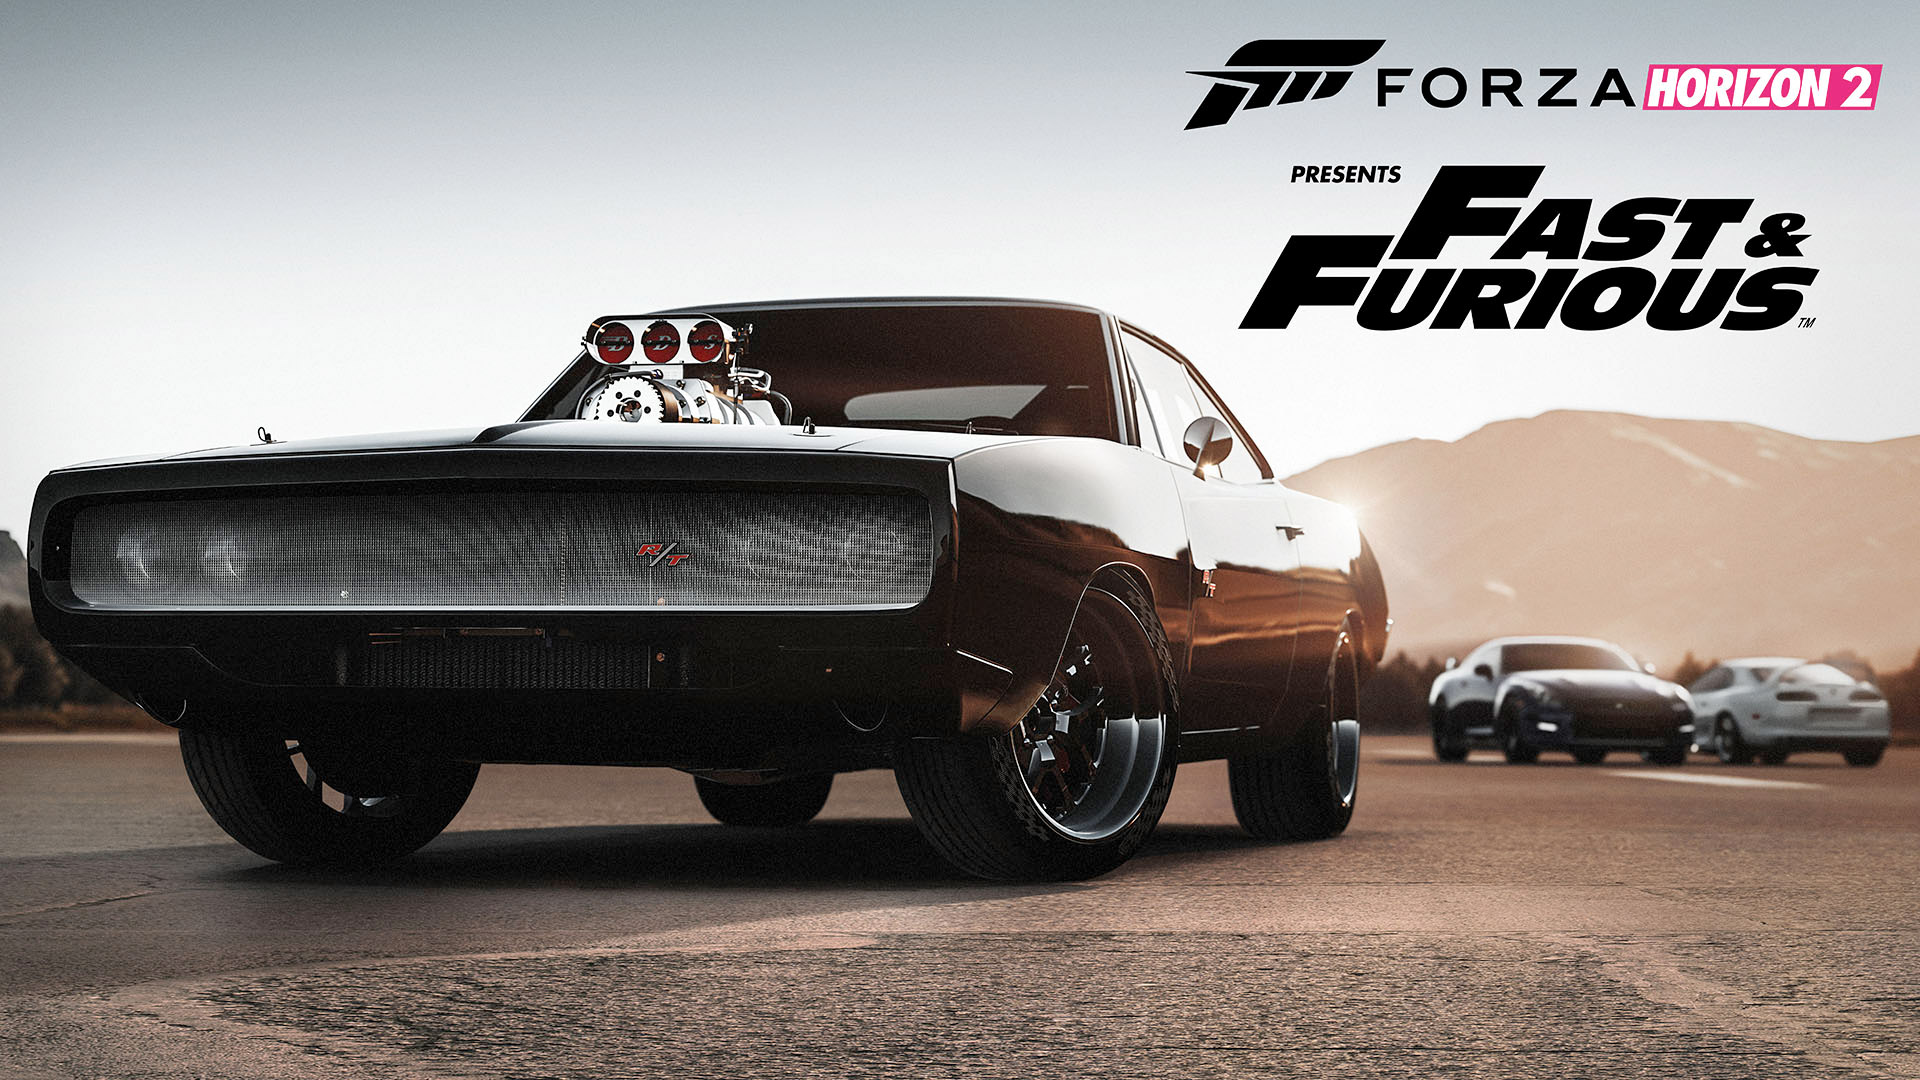 Forza Horizon 2 Wallpaper in 1920x1080